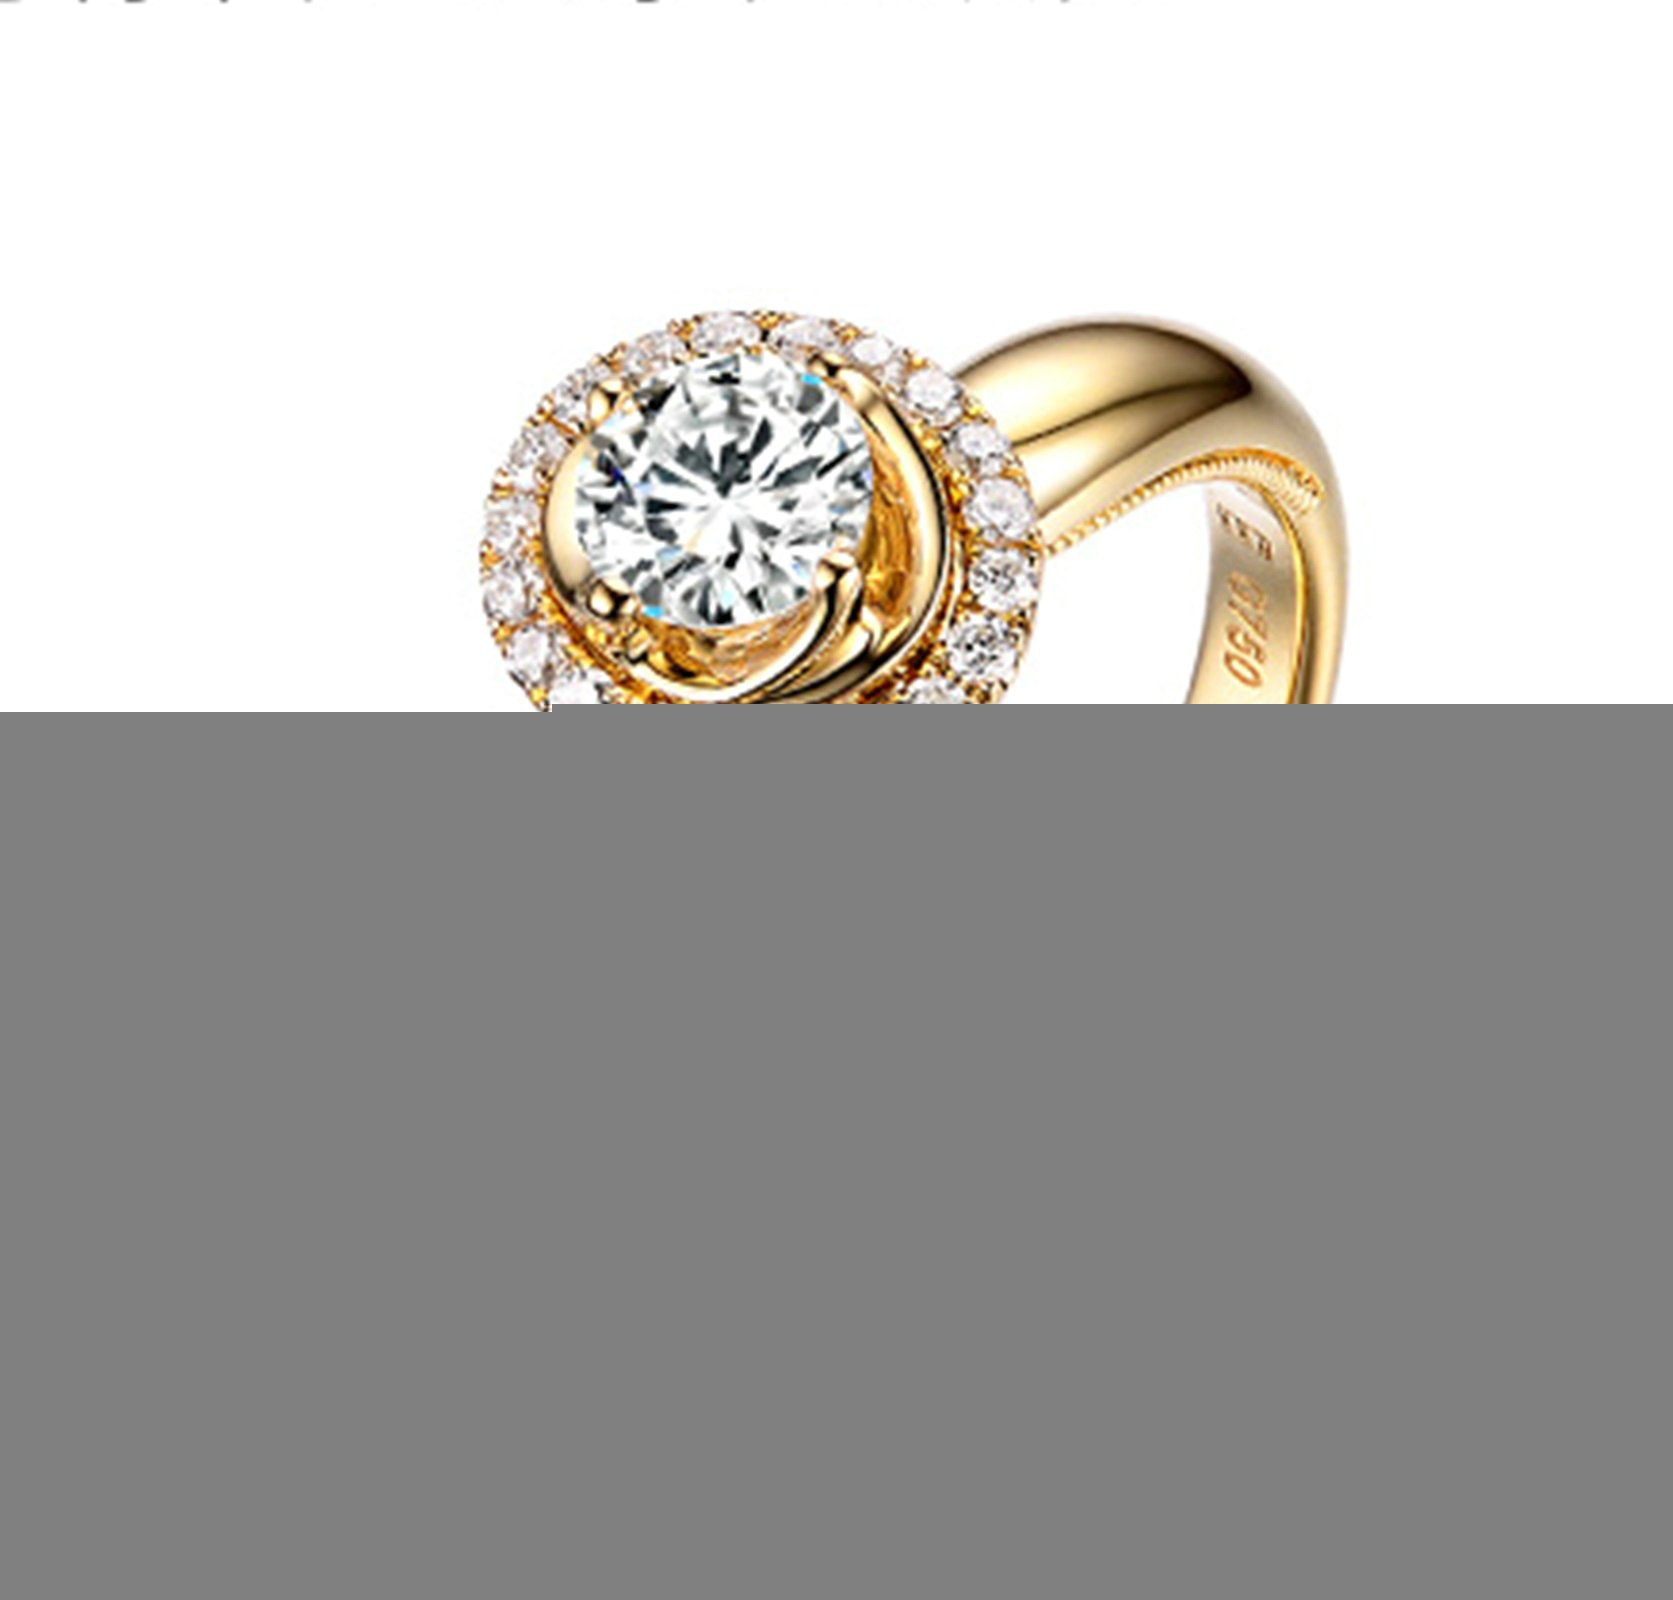 Gnzoe Rose Gold Women Wedding Rings Solitaire Engagement Rings Crown Flowers Yellow with White Blue 0.5ct Diamond Size 8